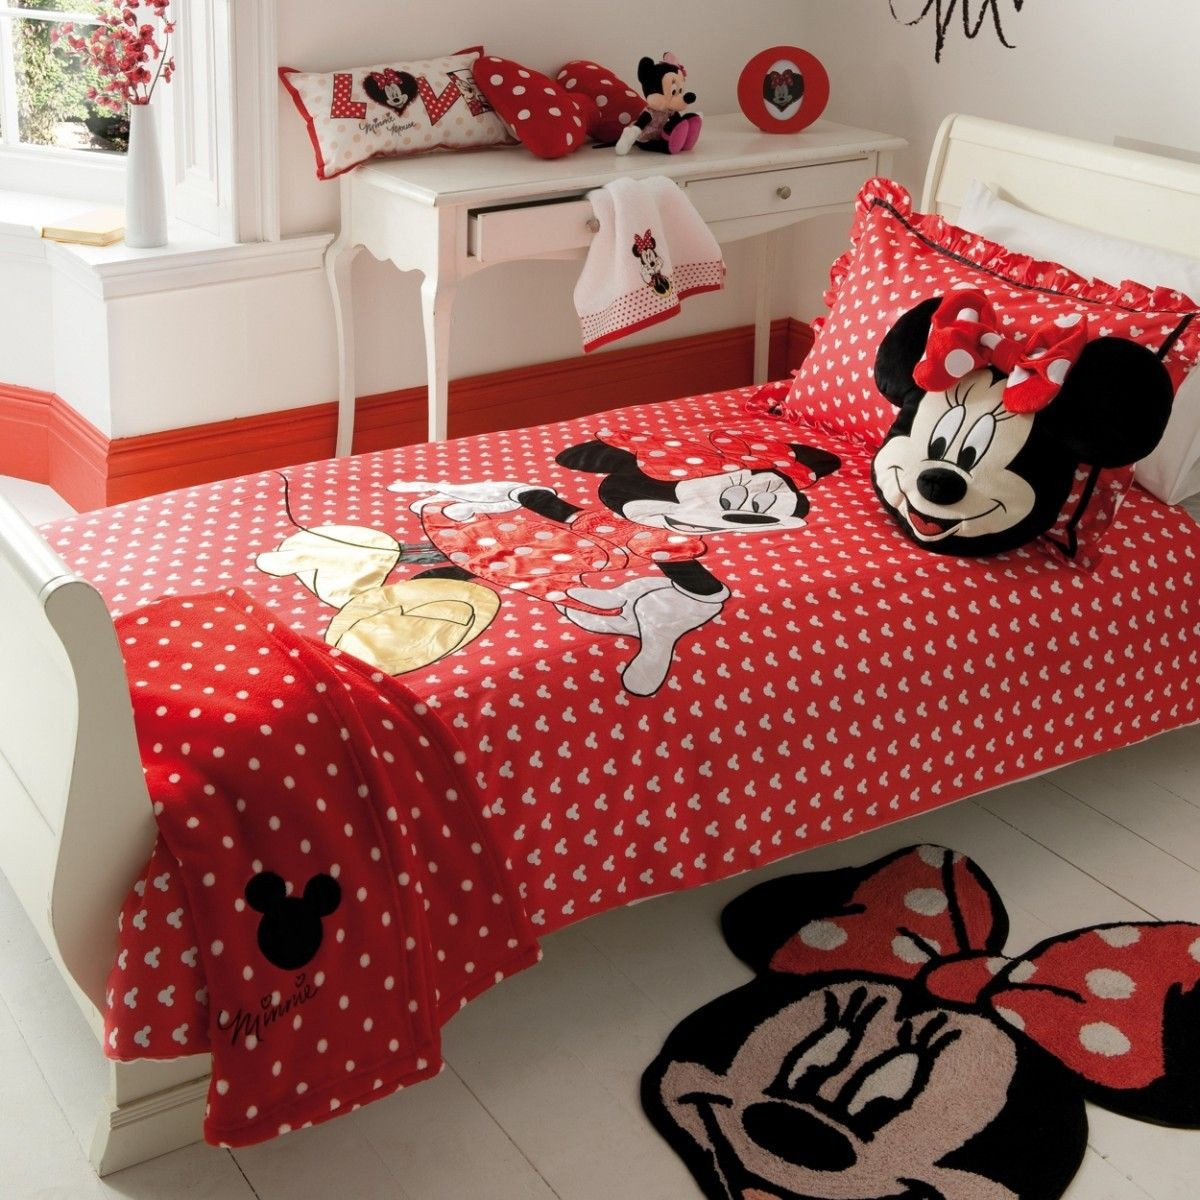 Minnie Mouse Bedroom Ideas Inspirational Minnie Mouse Wall Decorating Kit